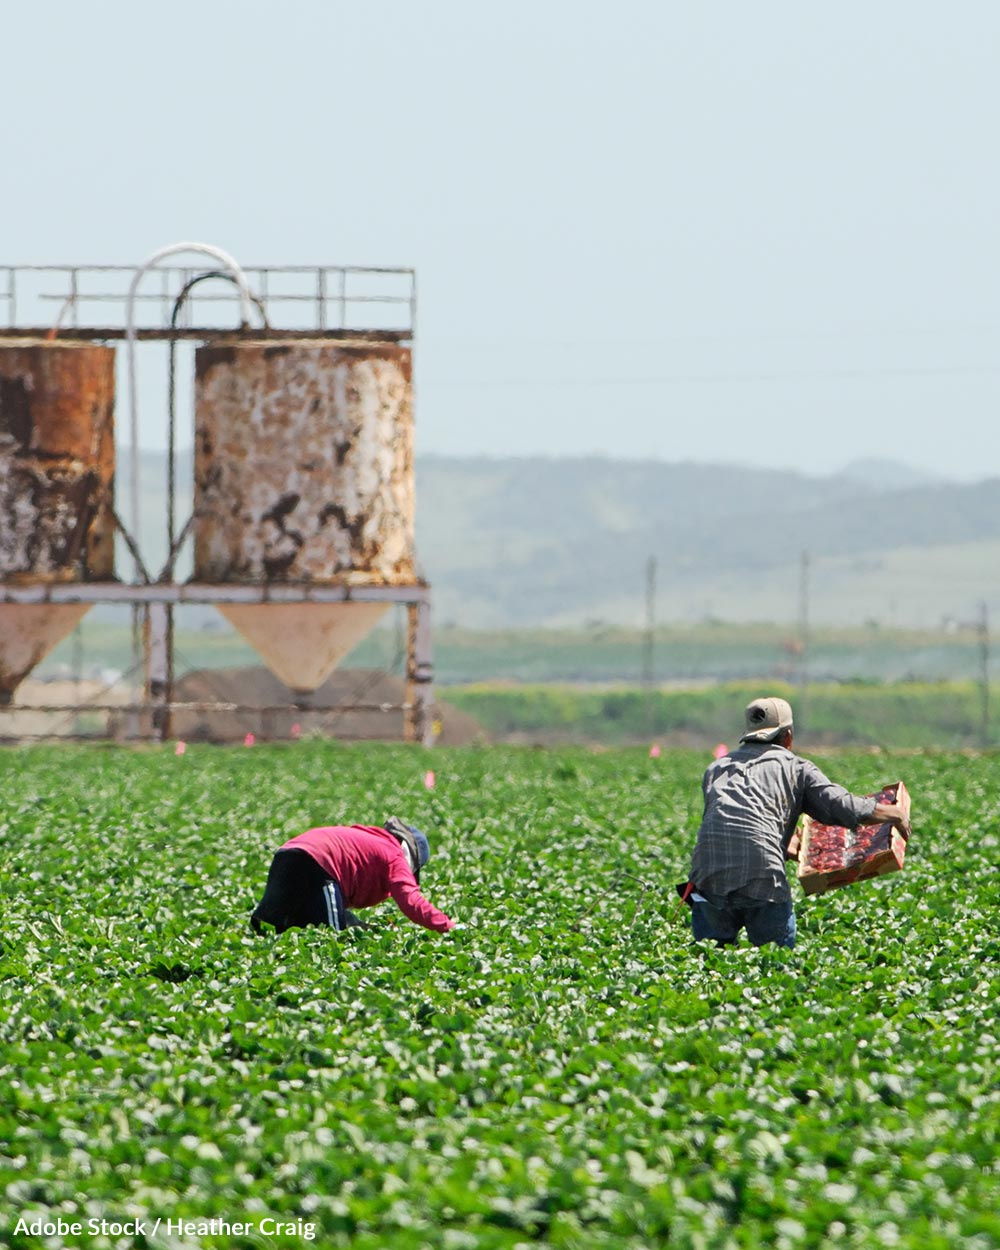 Help us take a stand for farmworkers.